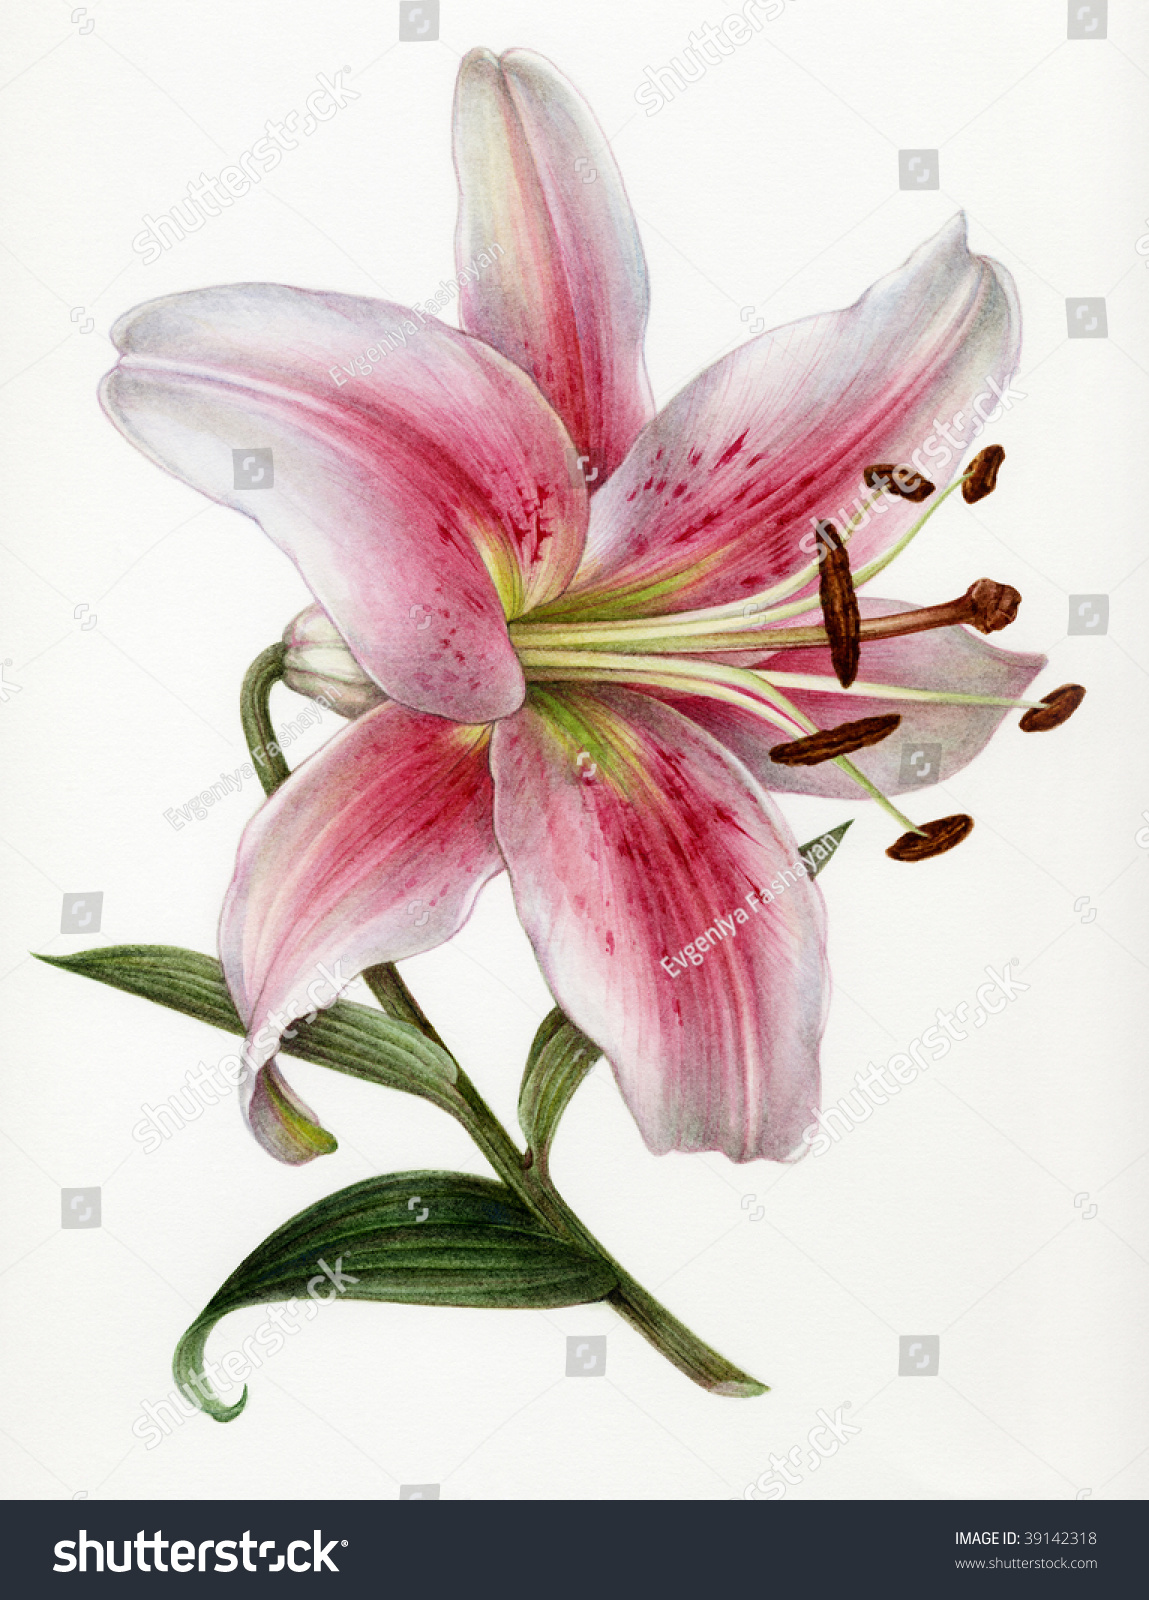 Watercolor painting flower lily stock illustration 39142318 watercolor painting of a of a flower of a lily izmirmasajfo Choice Image